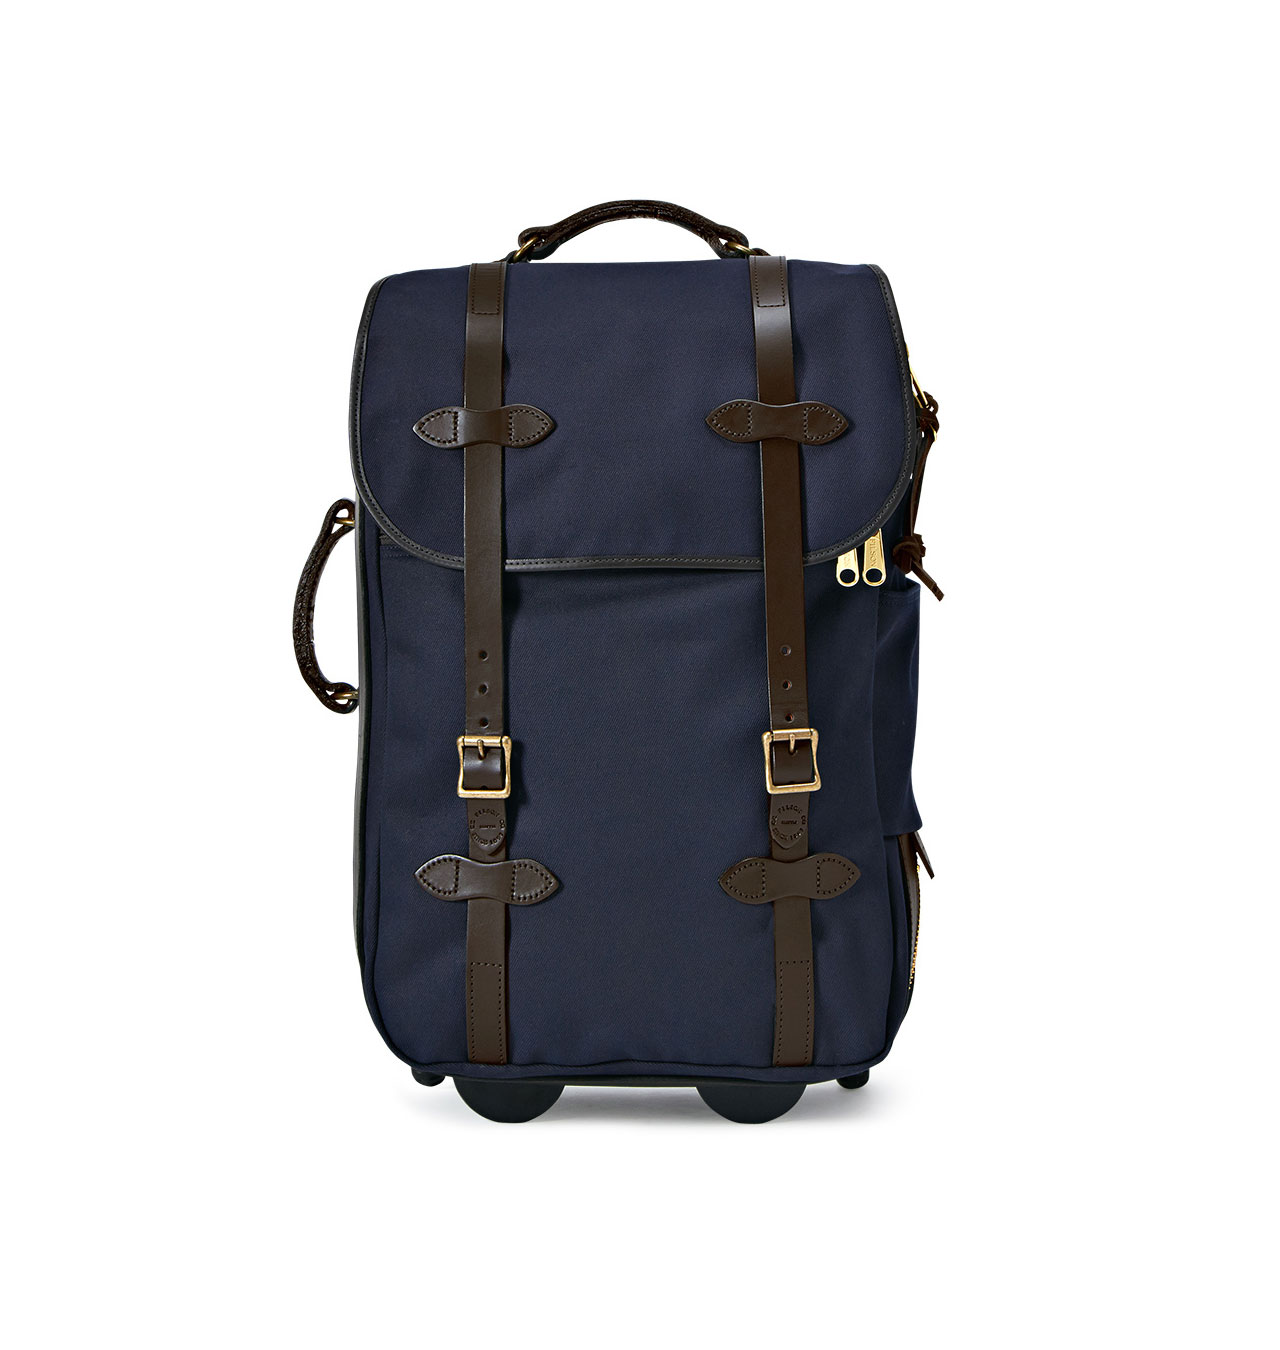 Filson---Rugged-Twill-Rolling-Carry-on-Bag-Medium---Navy-1